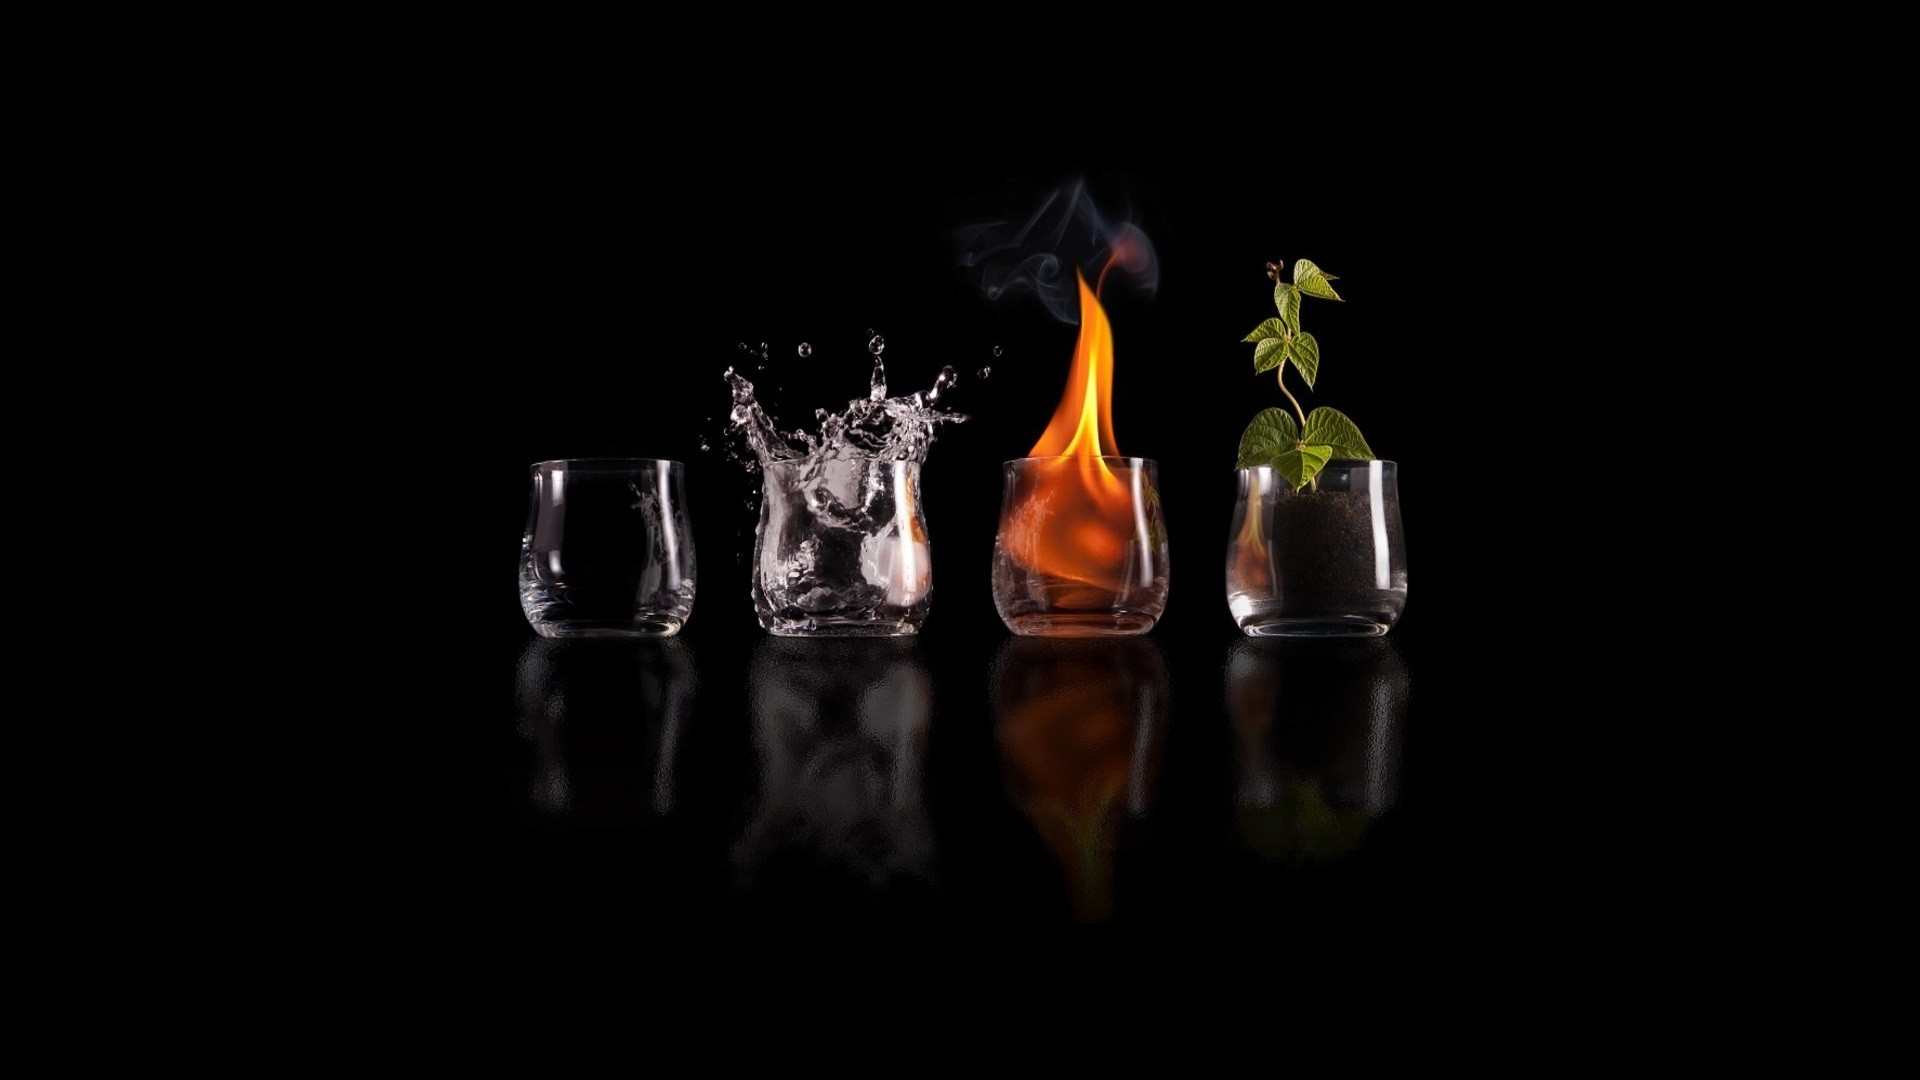 Collection of Four Elements Wallpaper on HDWallpapers